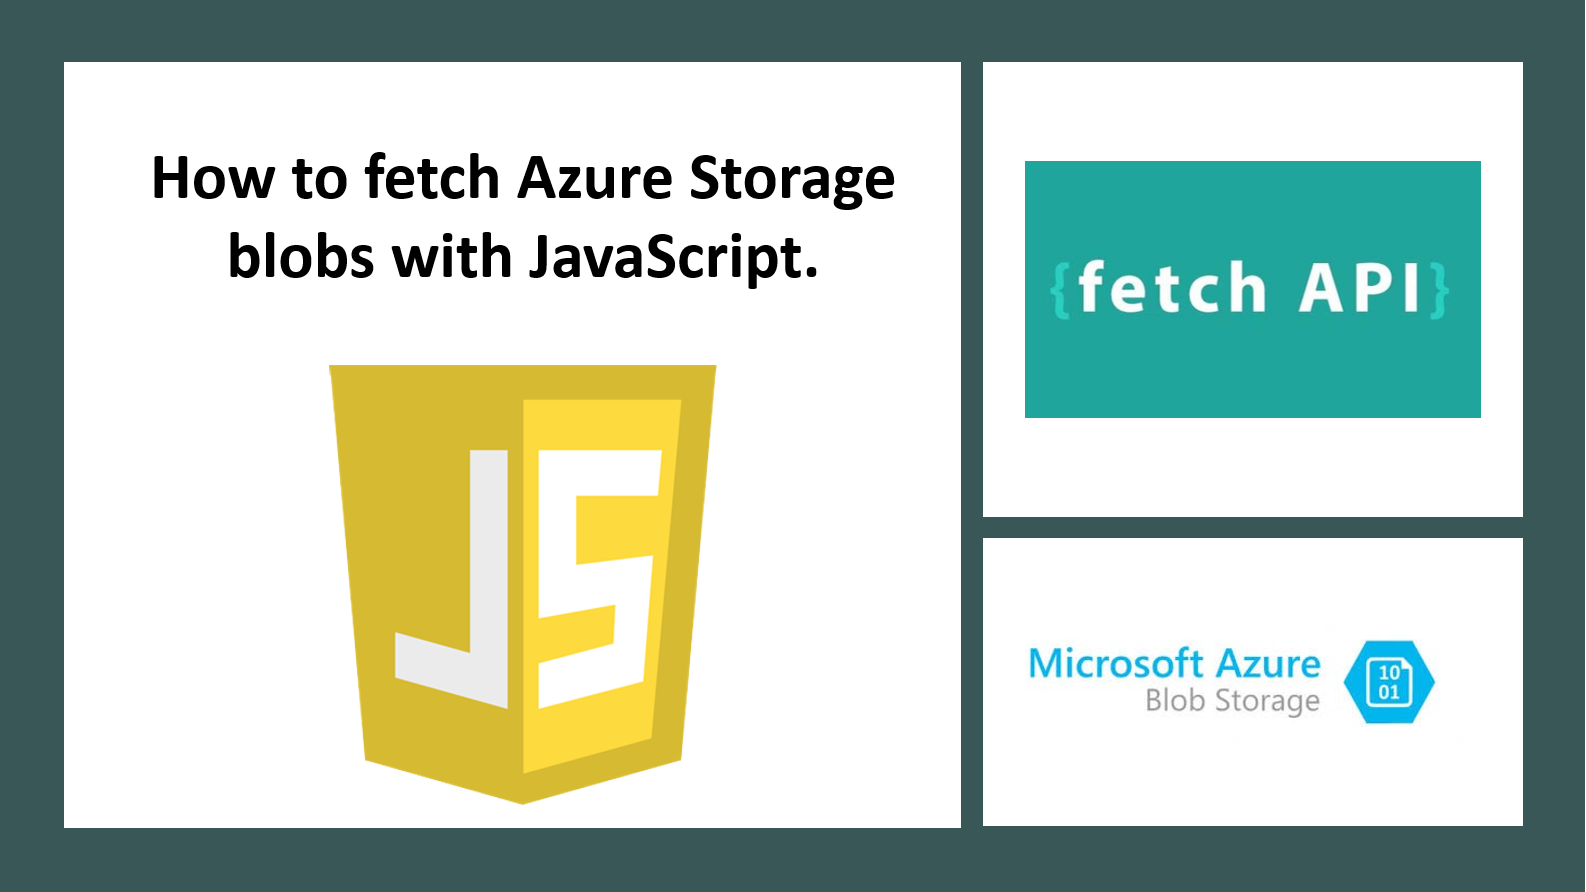 How to fetch Azure Blob Storage with JavaScript - Microsoft